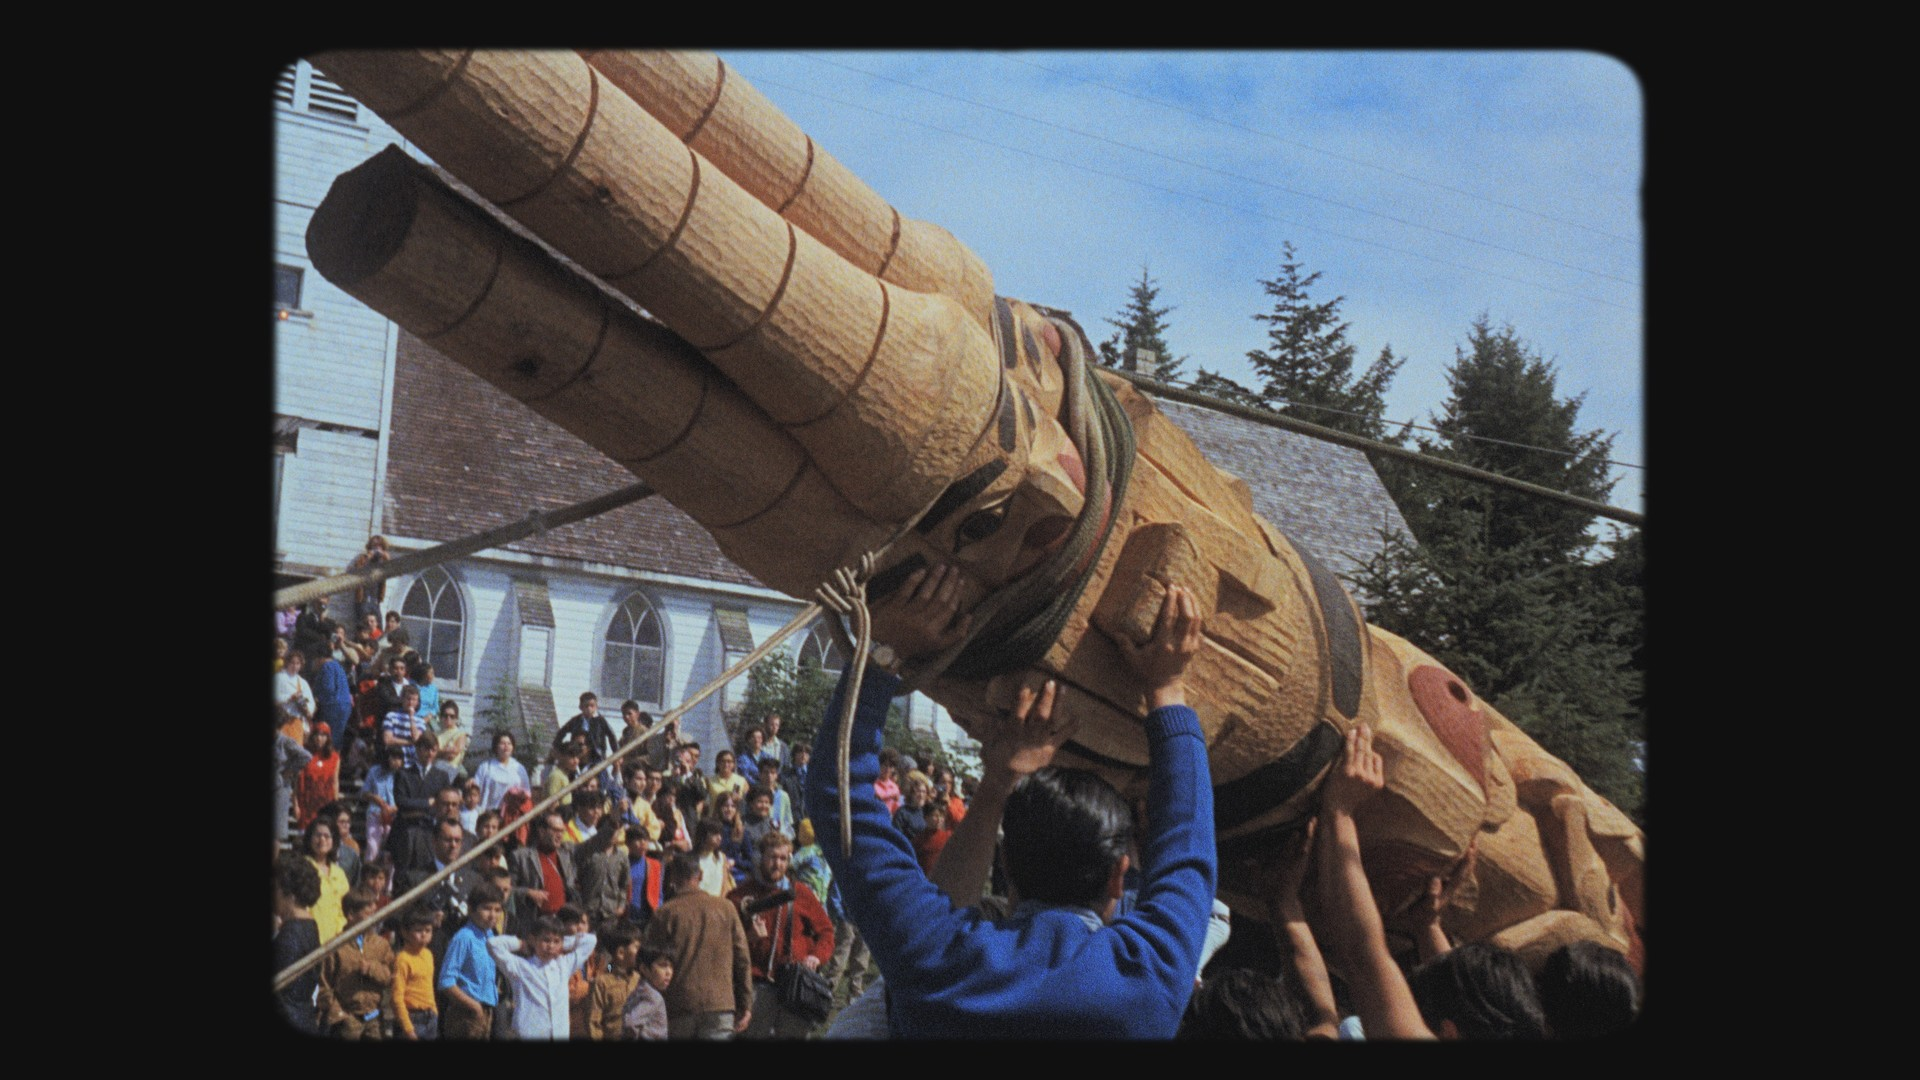 Now Is the Time - Director: Christopher Auchter16 m, Documentary Short, CanadaIn his quest to find answers as to why the totem pole disappeared from the Haida landscape for more than a century, Haida filmmaker, Christopher Auchter, visits renowned Haida carver Robert Davidson in his studio in White Rock, BC. Robert was the subject of the 1969 NFB documentary THIS WAS THE TIME, that raised more questions than it answered.